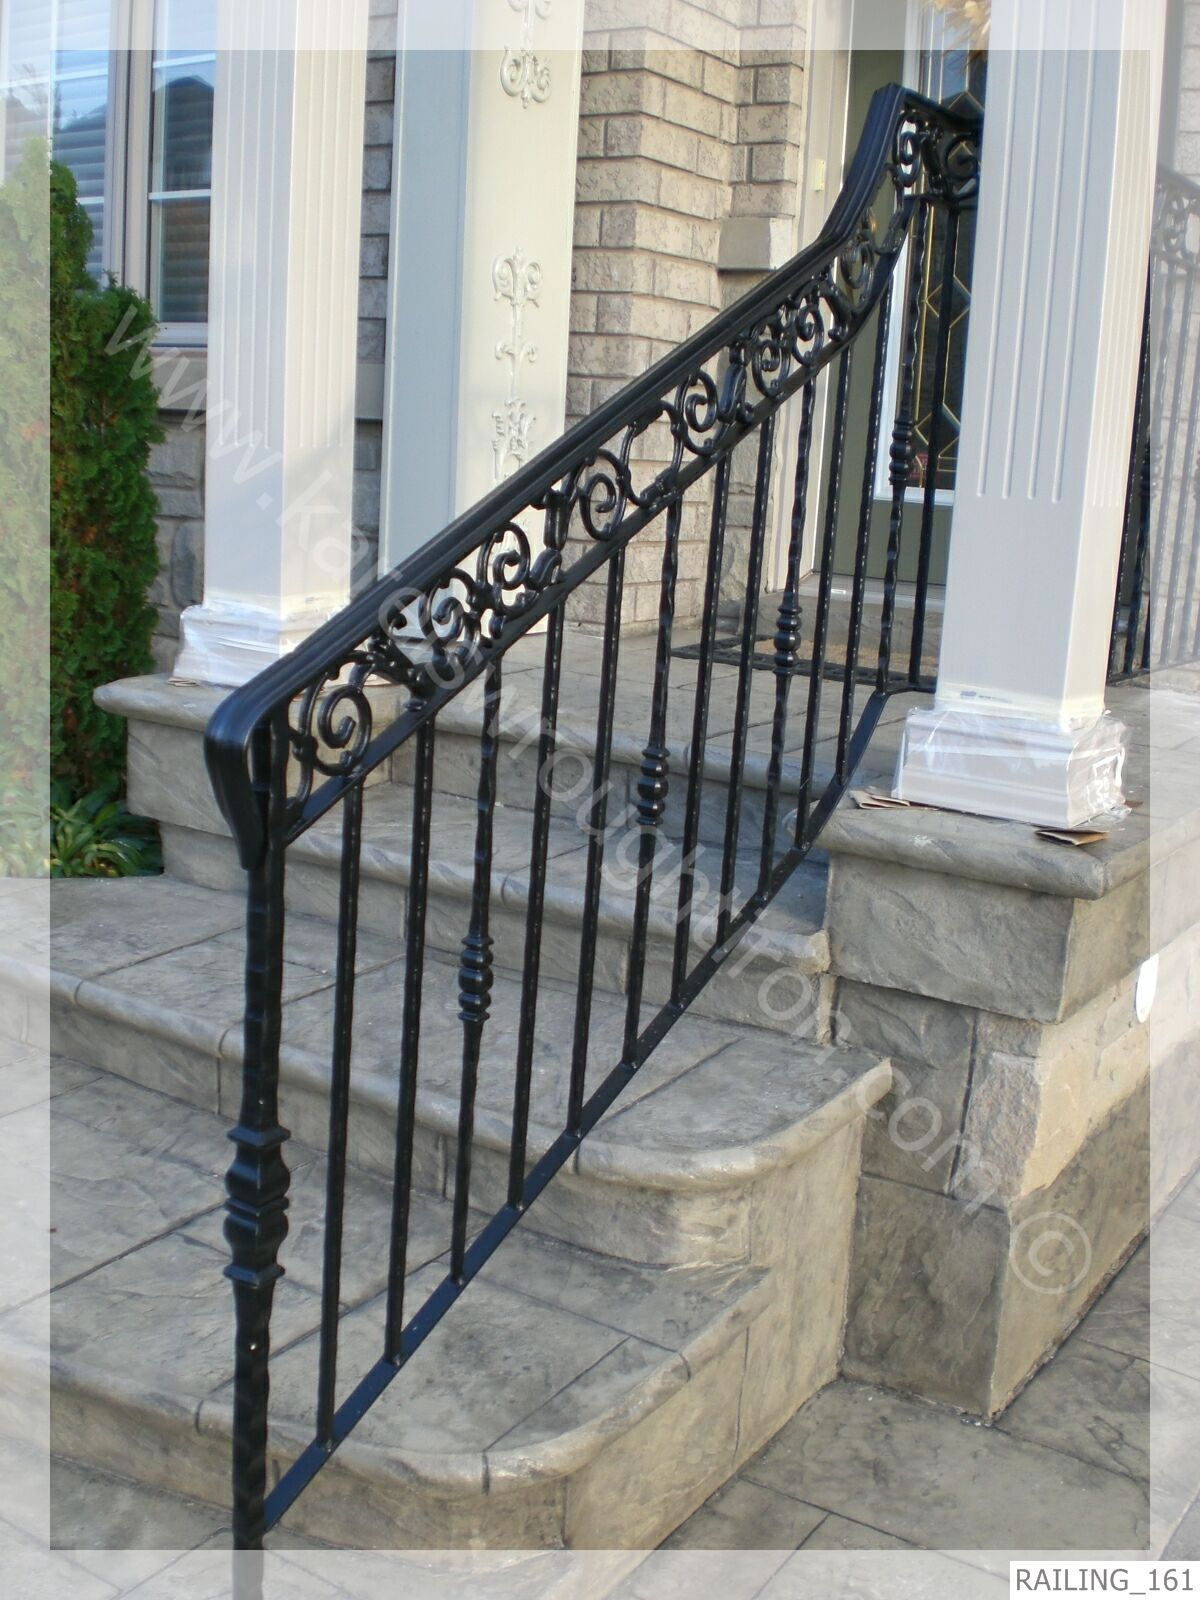 Home Design Inspirational Wrought Iron Railing Designs Home Color Ideas Wrought As Wells As W Wrought Iron Railing Railing Design Wrought Iron Railing Exterior